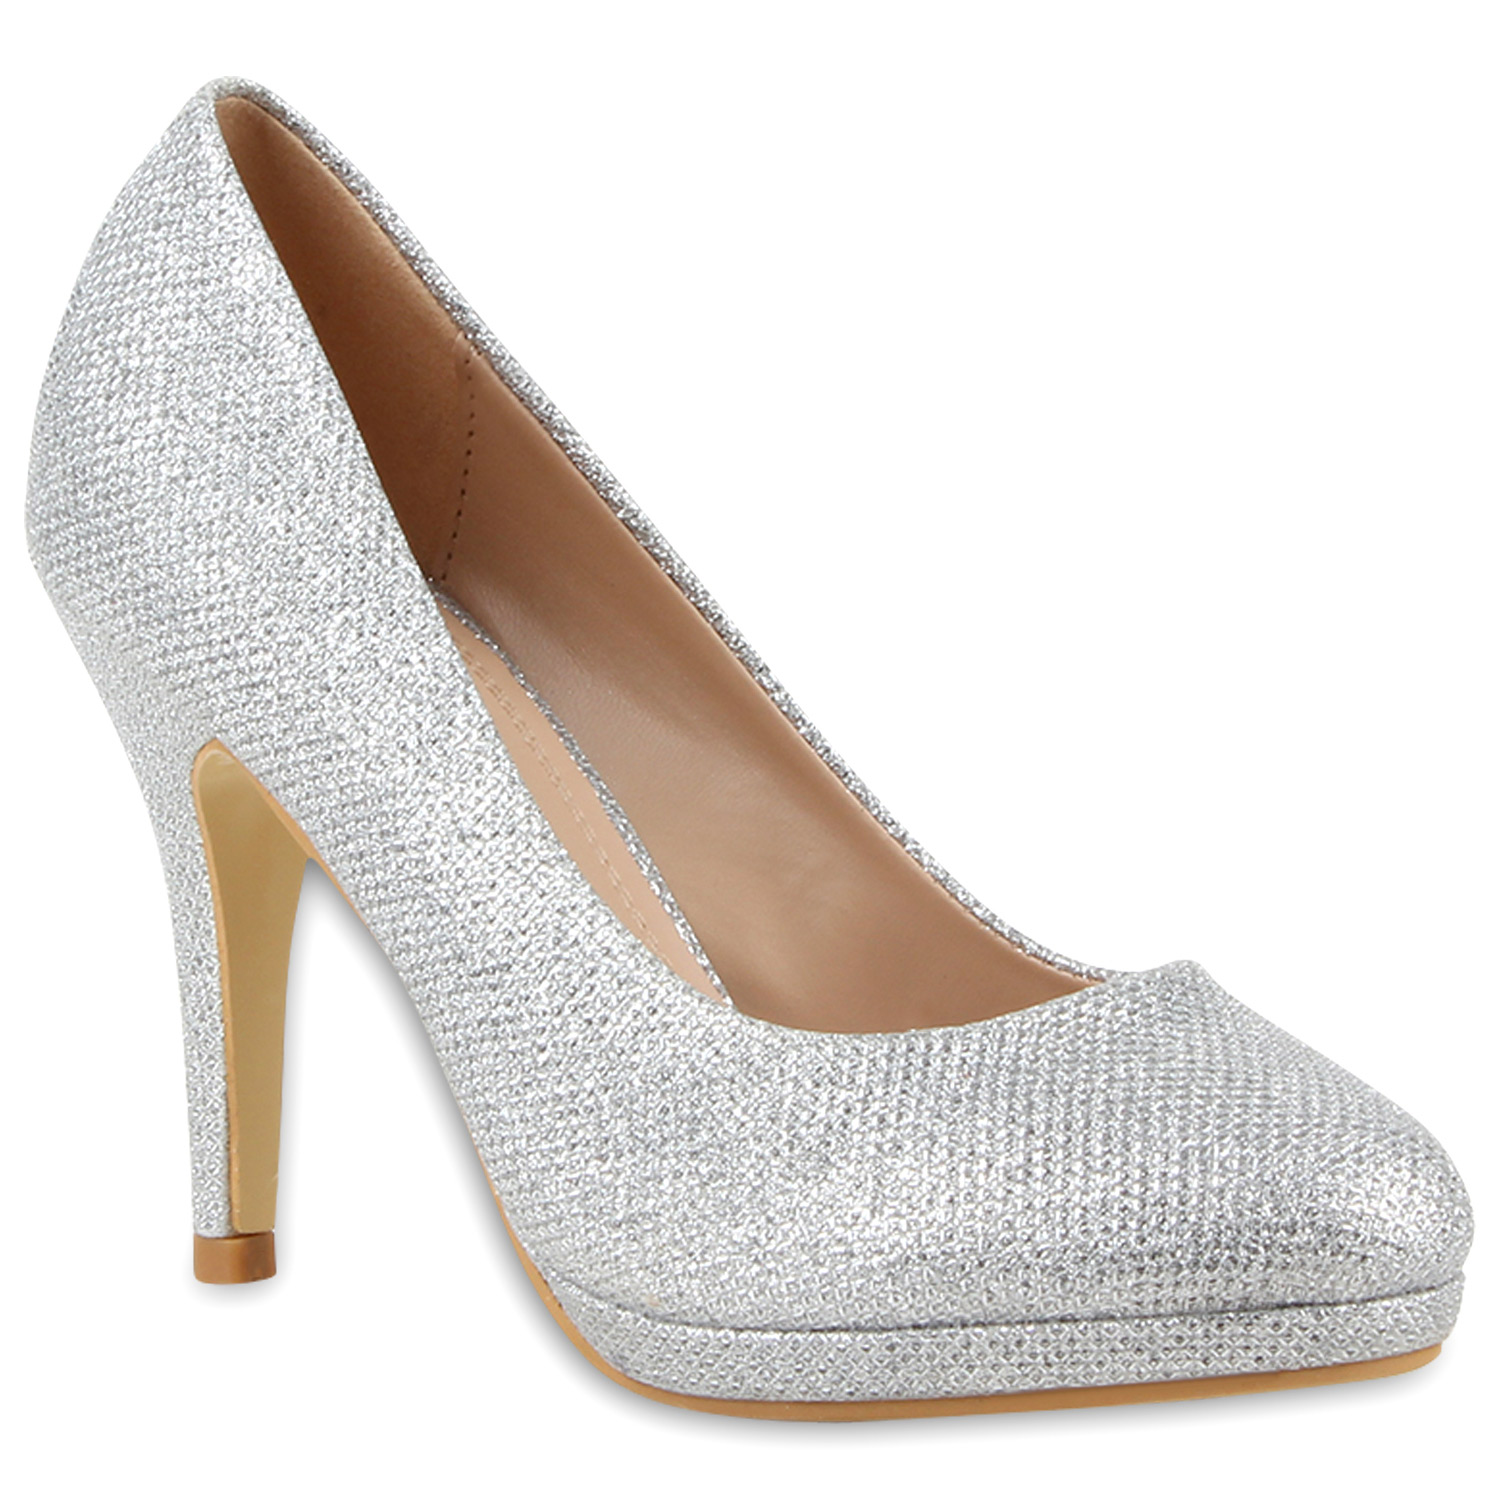 4a408ade68c6dc Damen Pumps in Silber (79727-526) - stiefelparadies.de